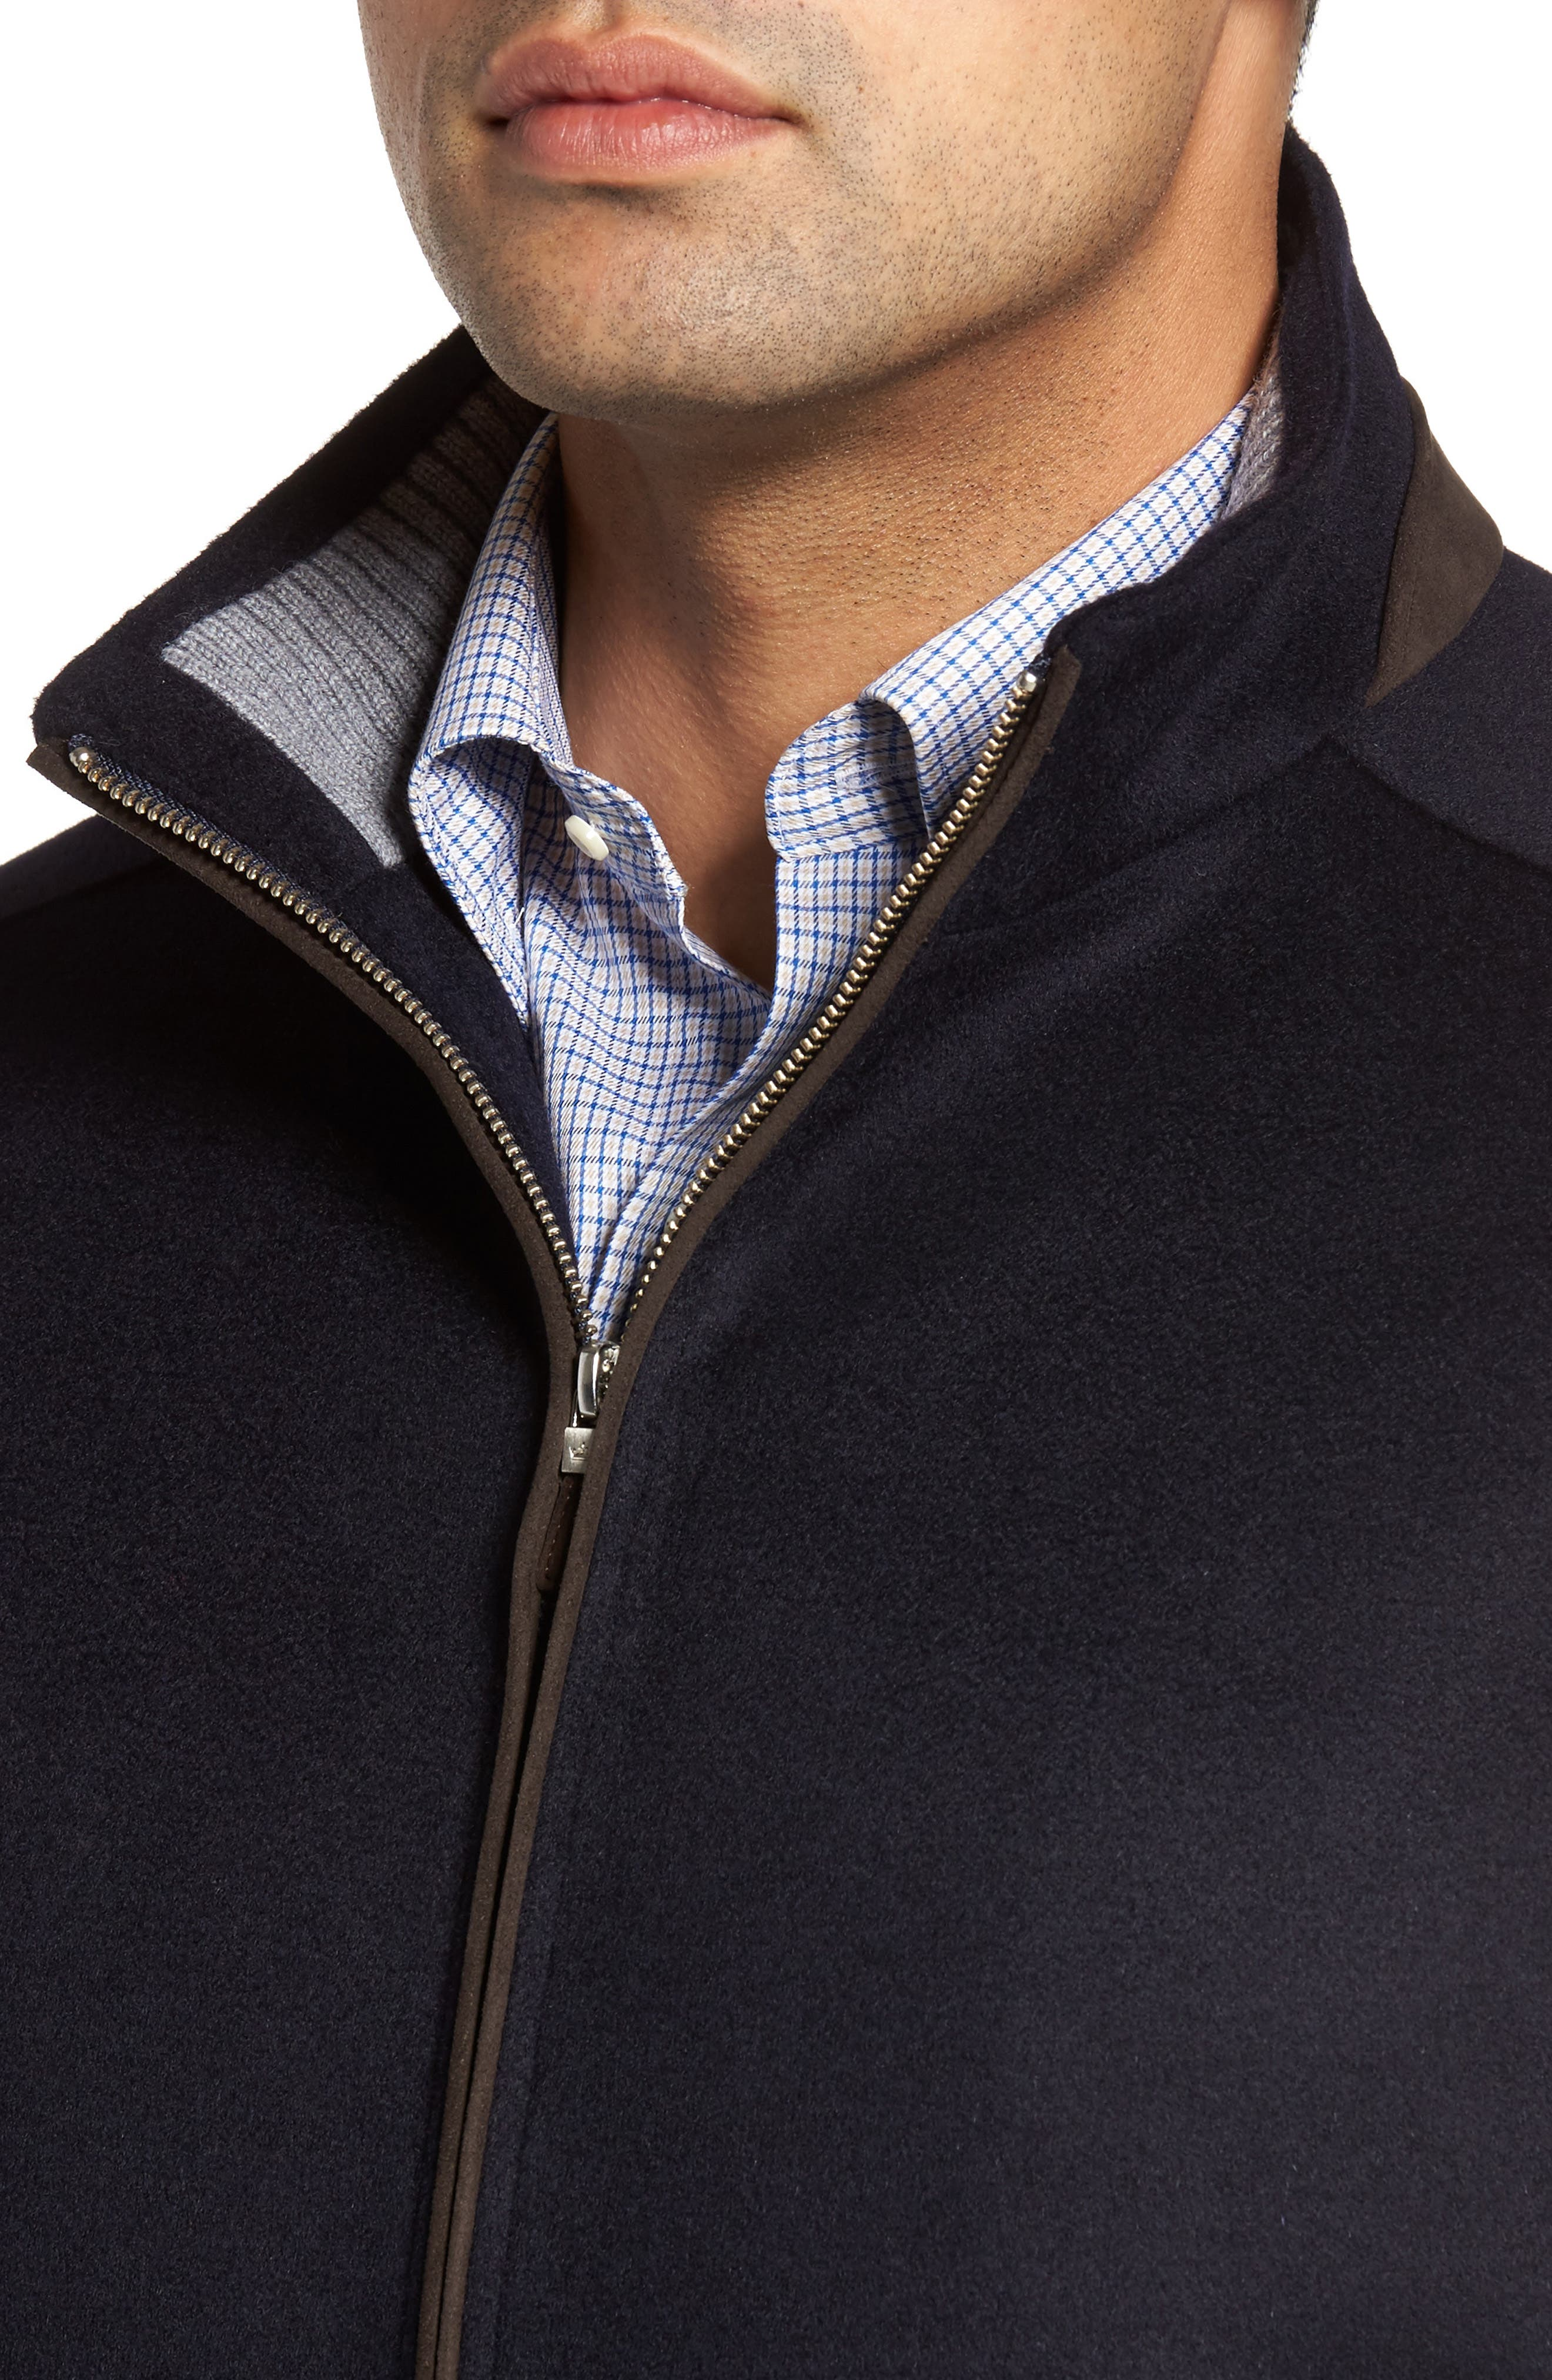 Westport Wool & Cashmere Jacket,                             Alternate thumbnail 4, color,                             Navy